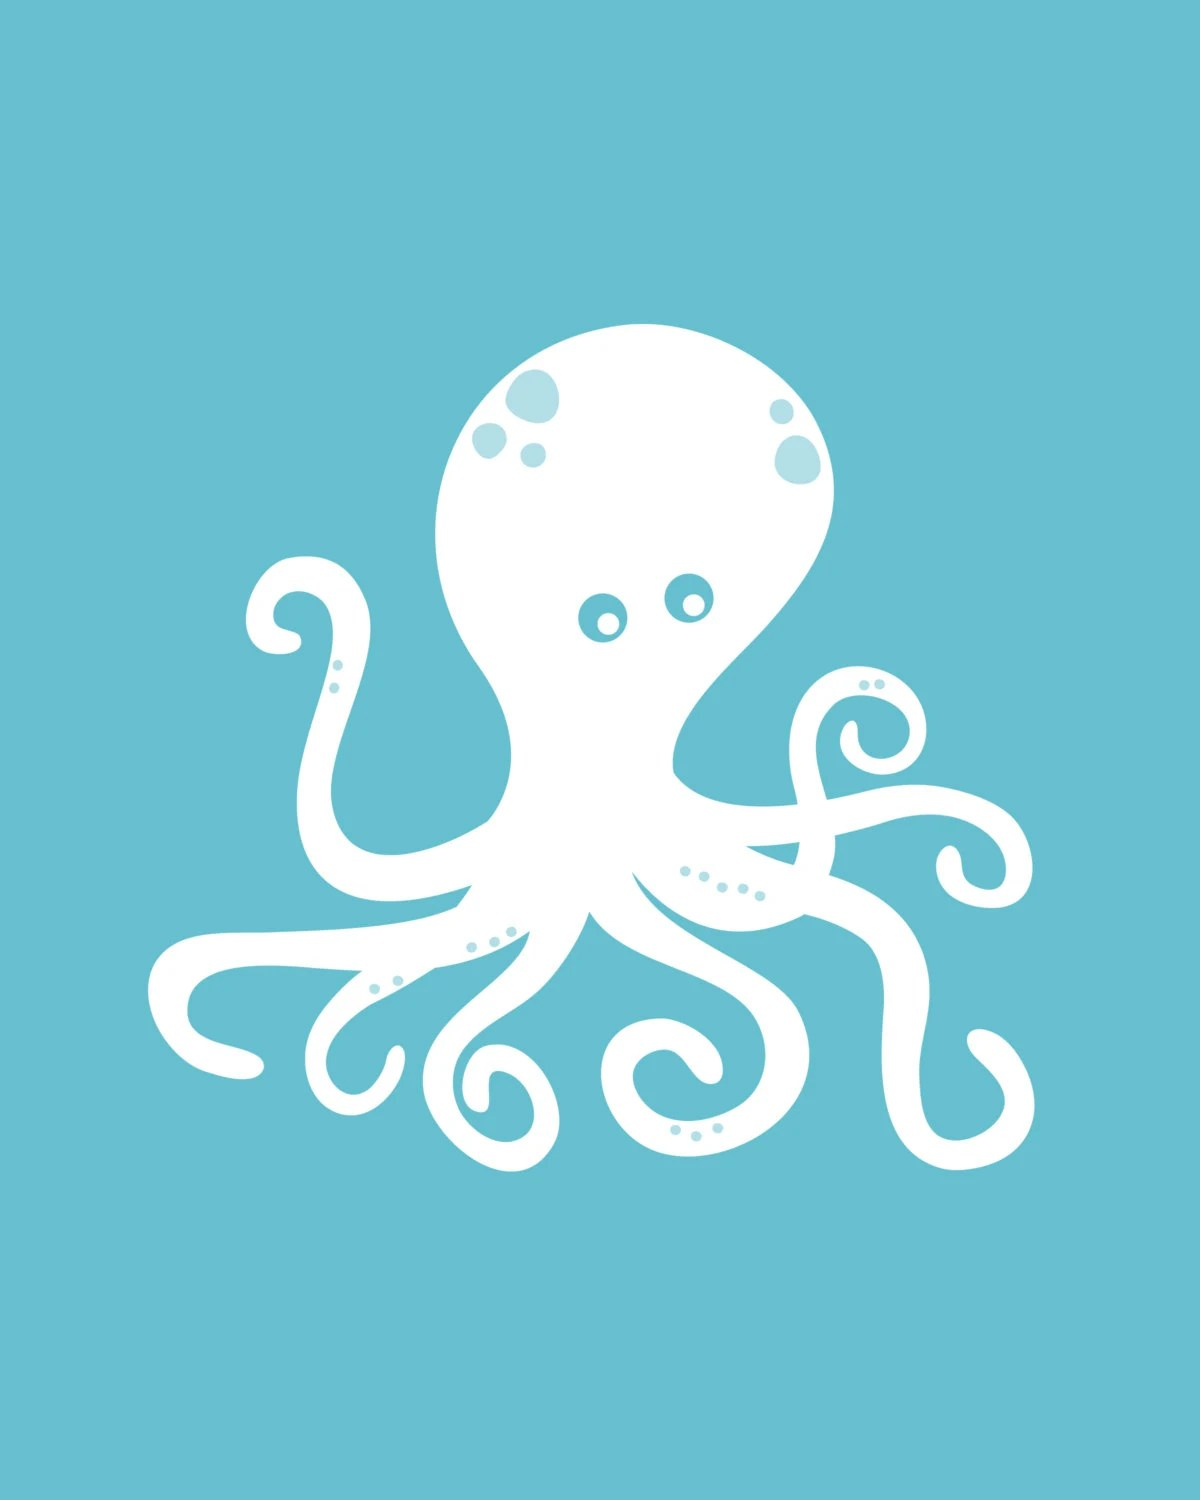 Turquoise Octopus Print 8 5x11 Digital Download